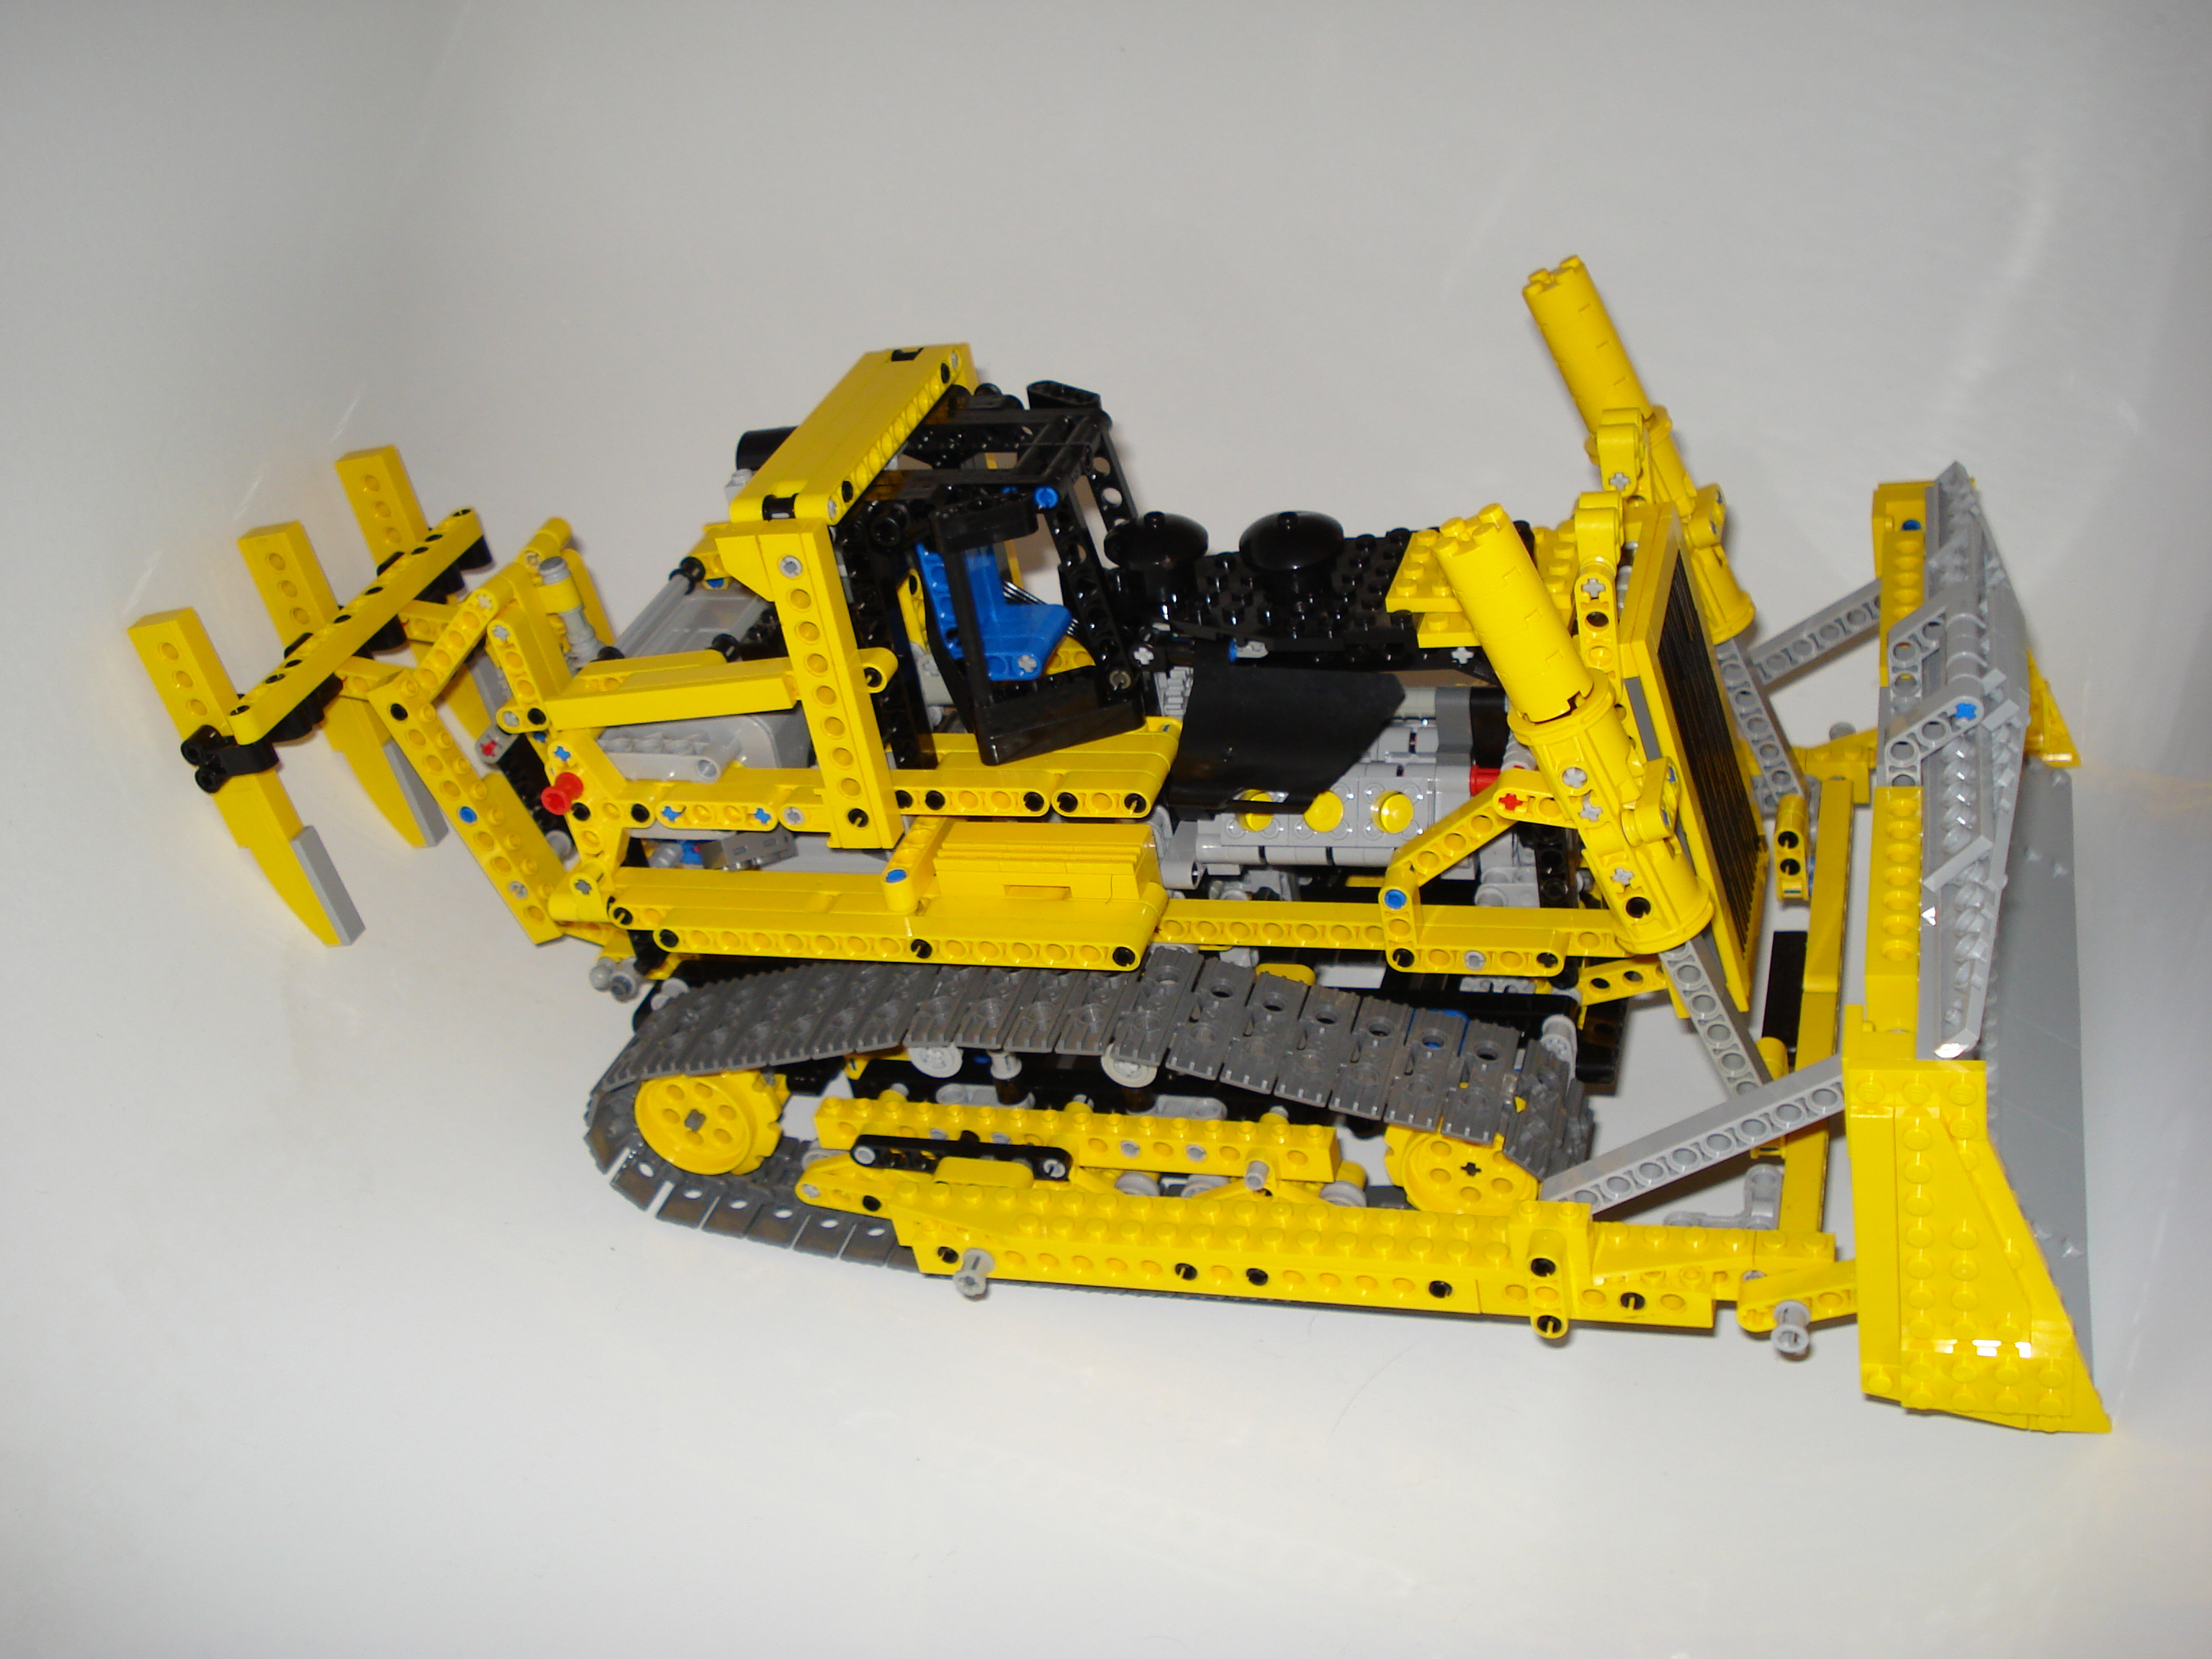 8275-motorized_bulldozer_2.jpg